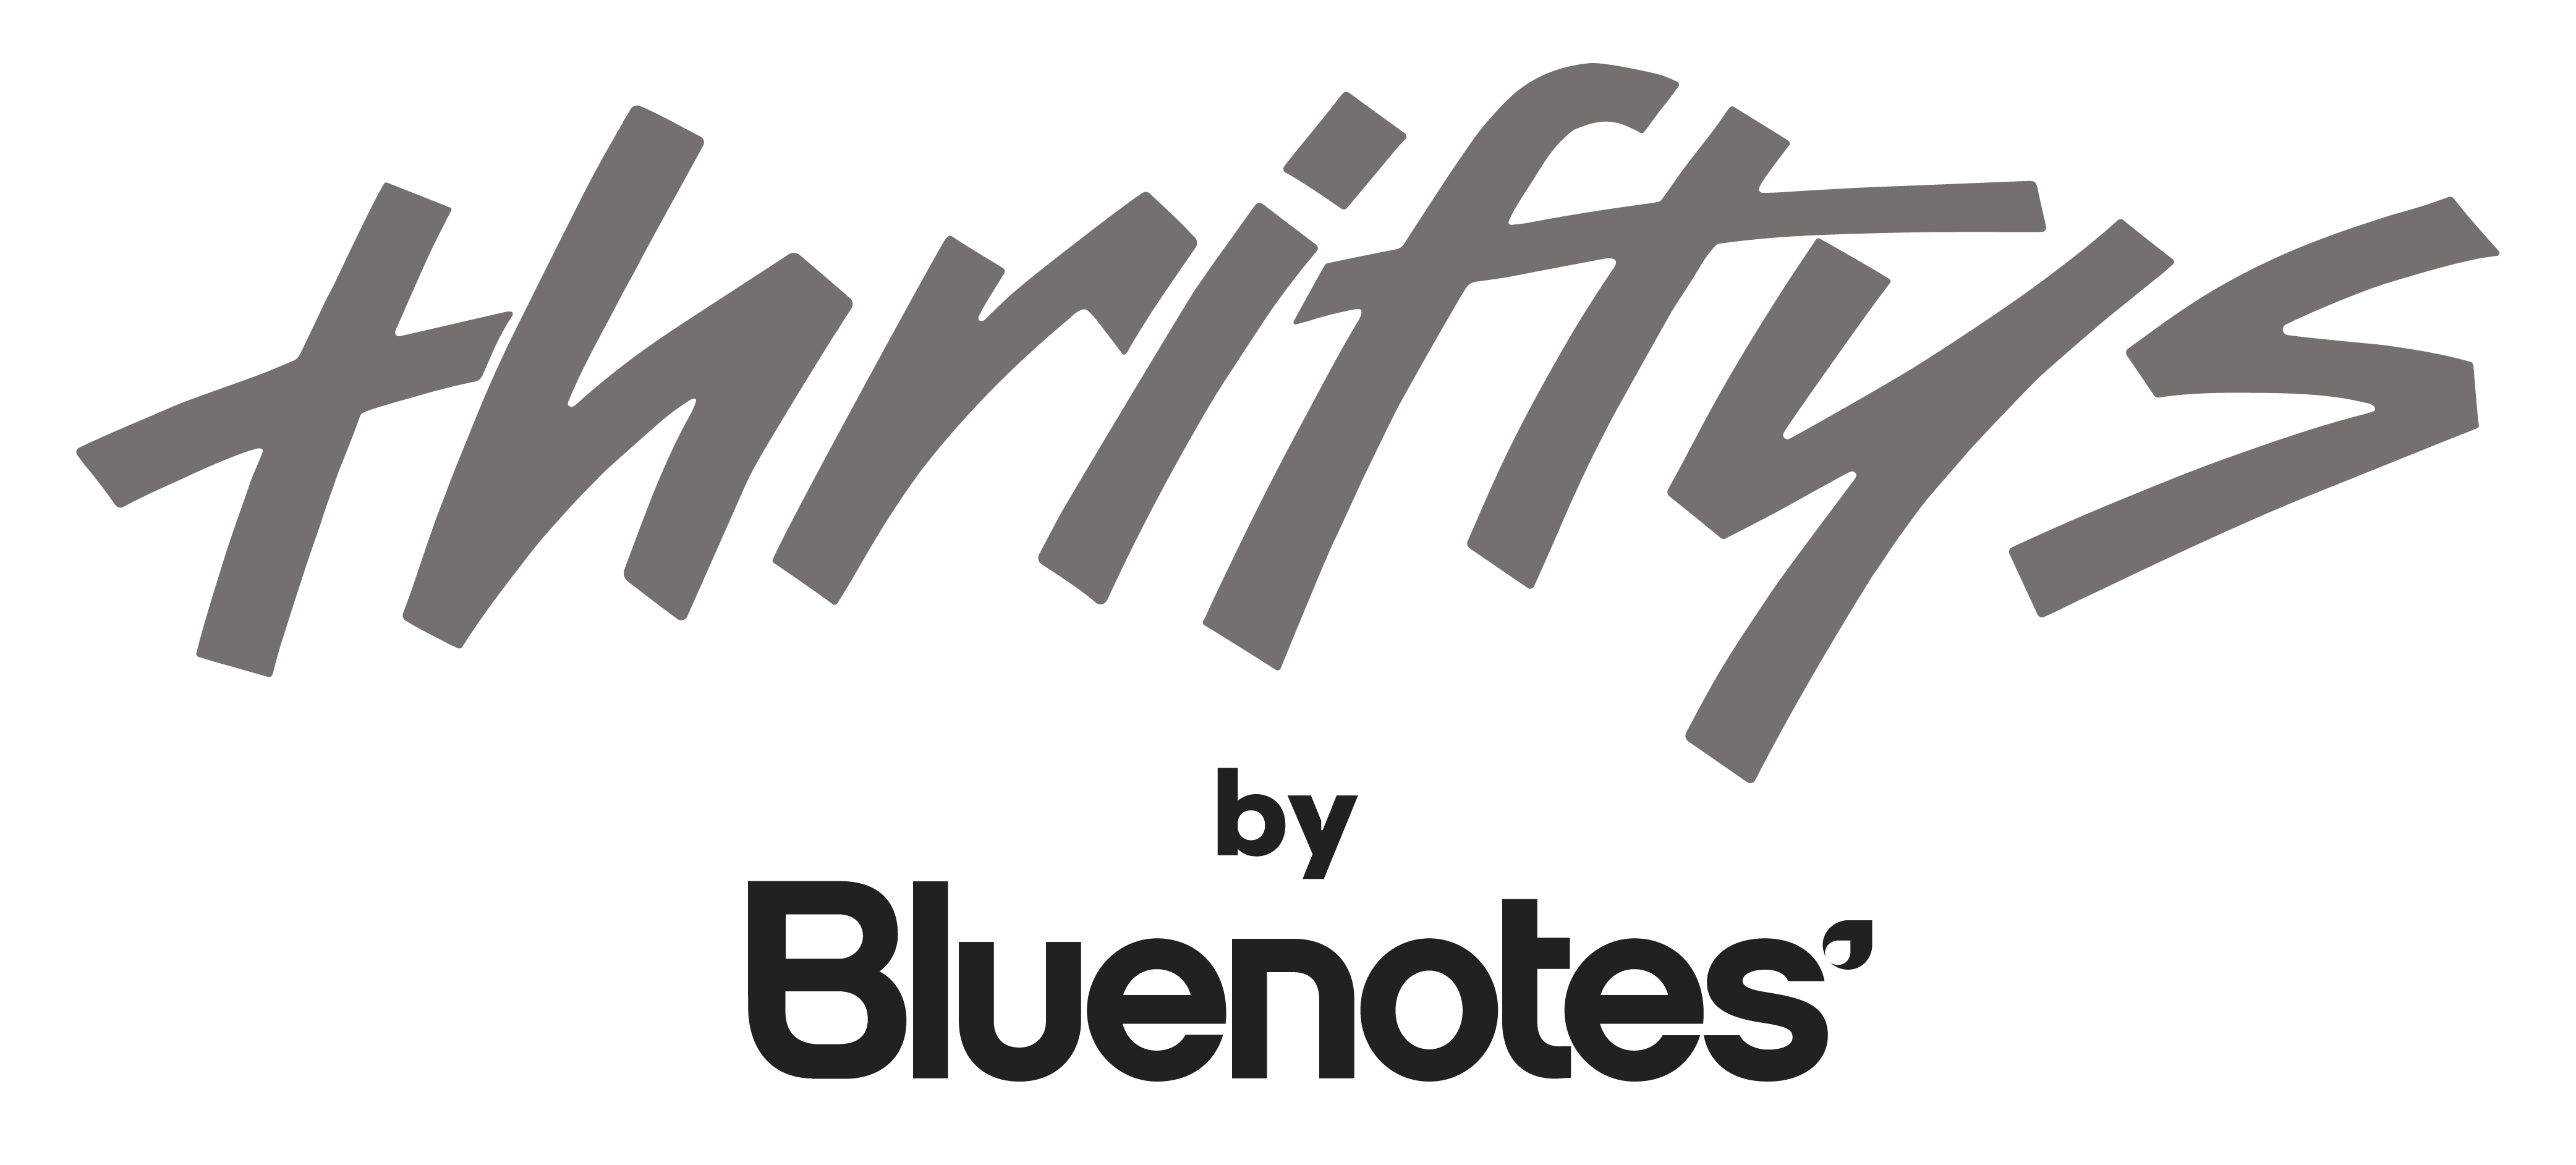 Thrifty's by Bluenotes